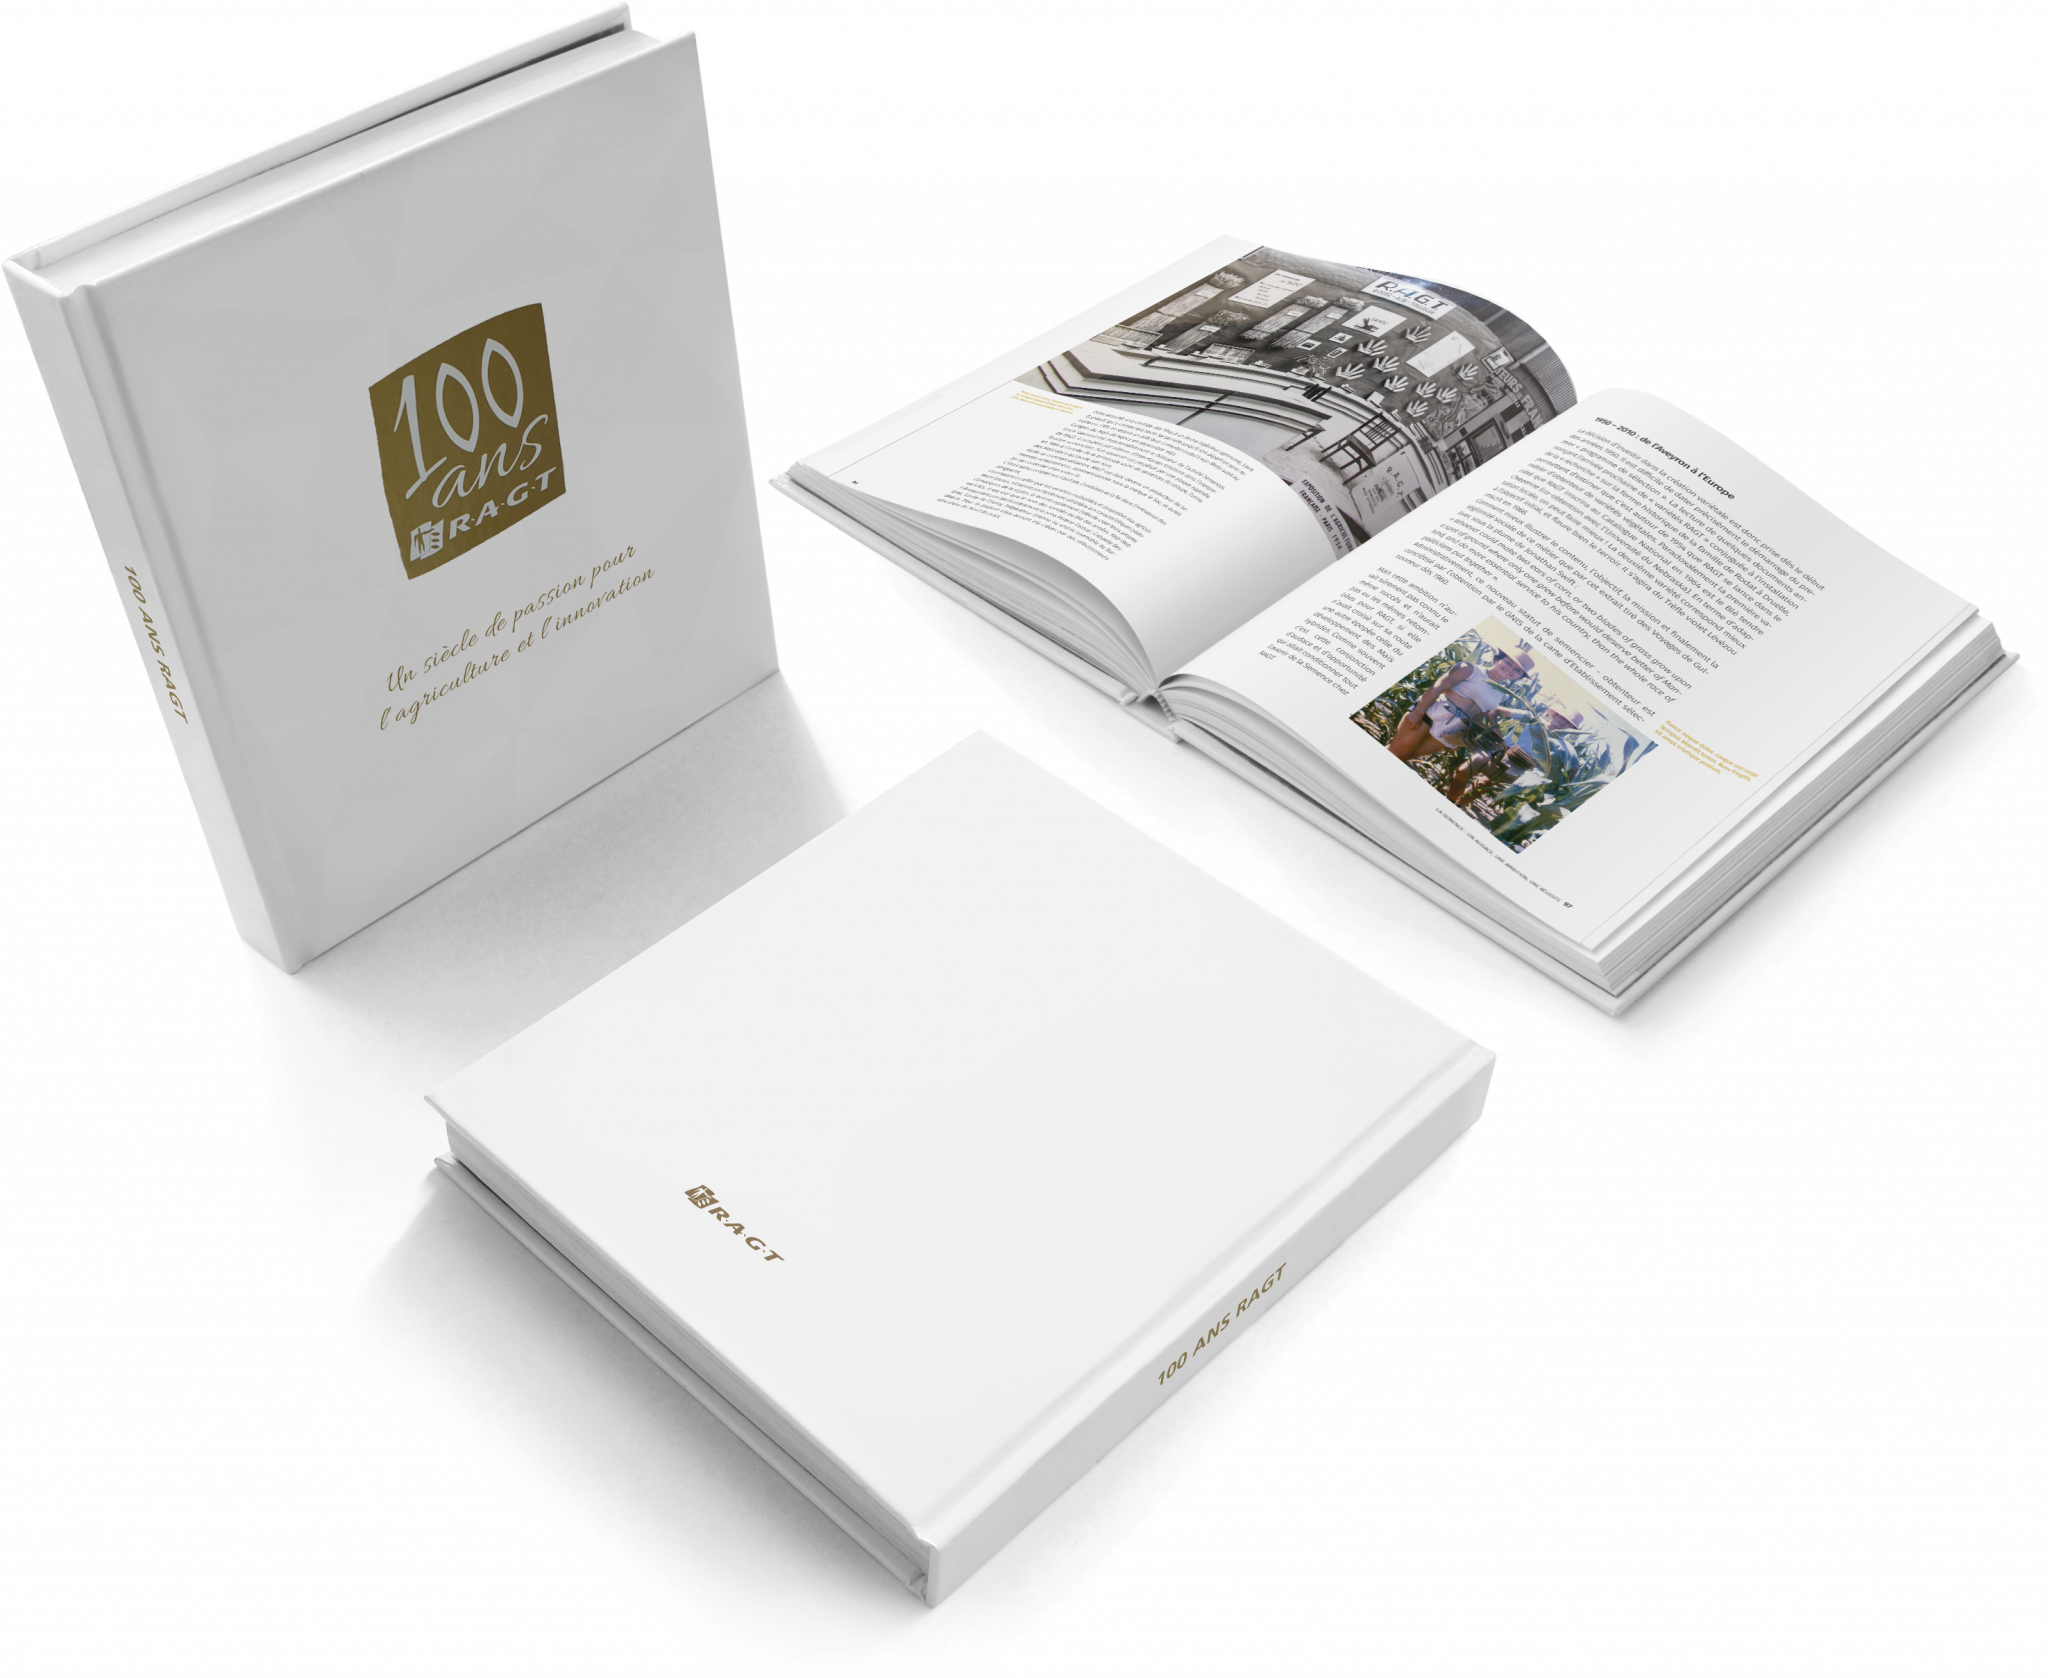 Book on the 100 years of the RAGT Group